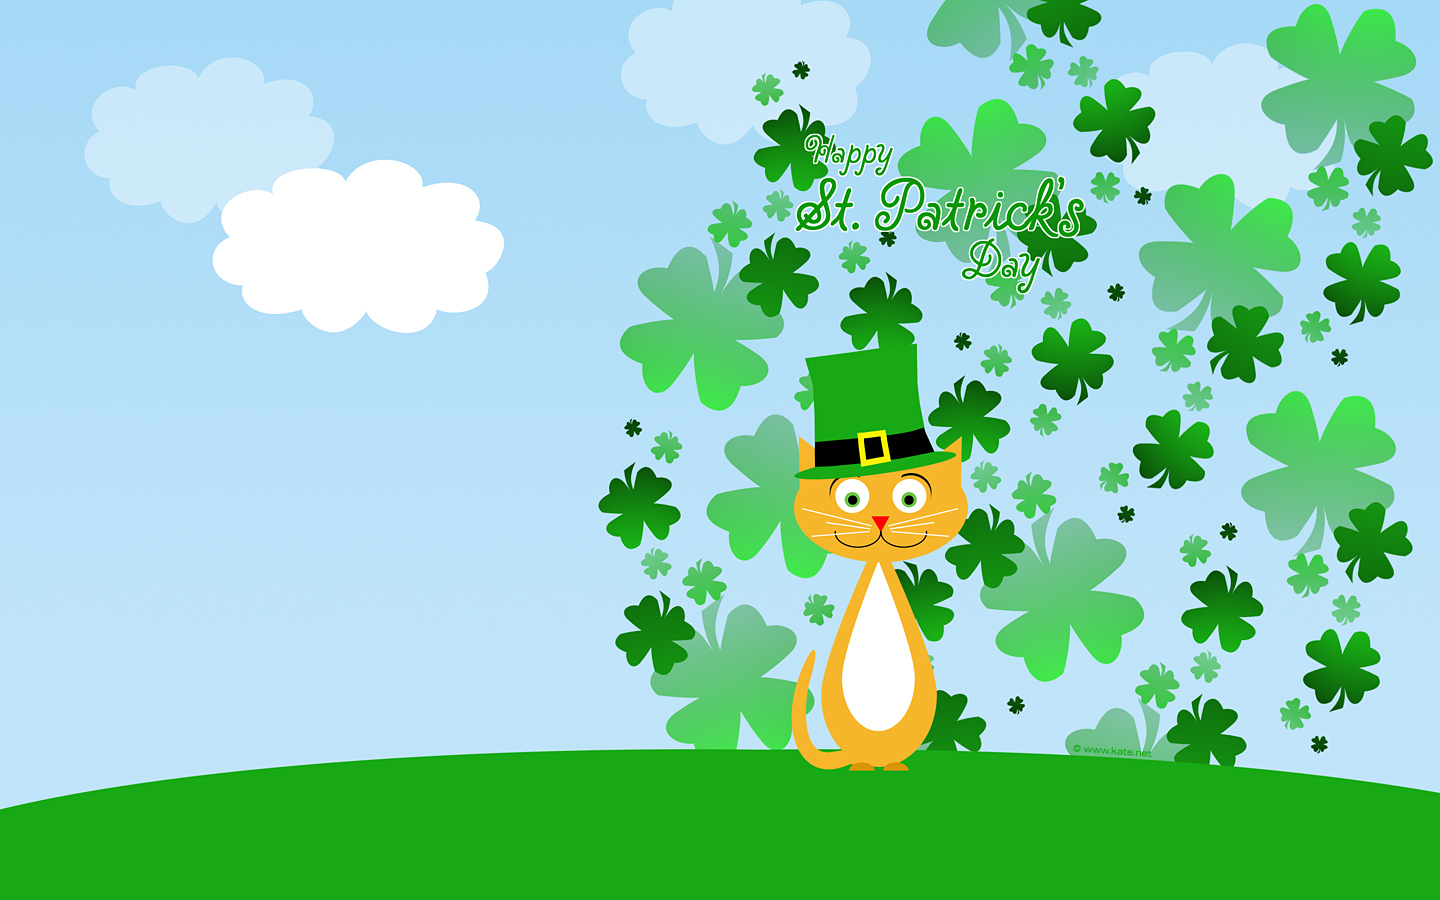 St Patricks Day Wallpaper   Miscellaneous Photos and Wallpapers 1440x900